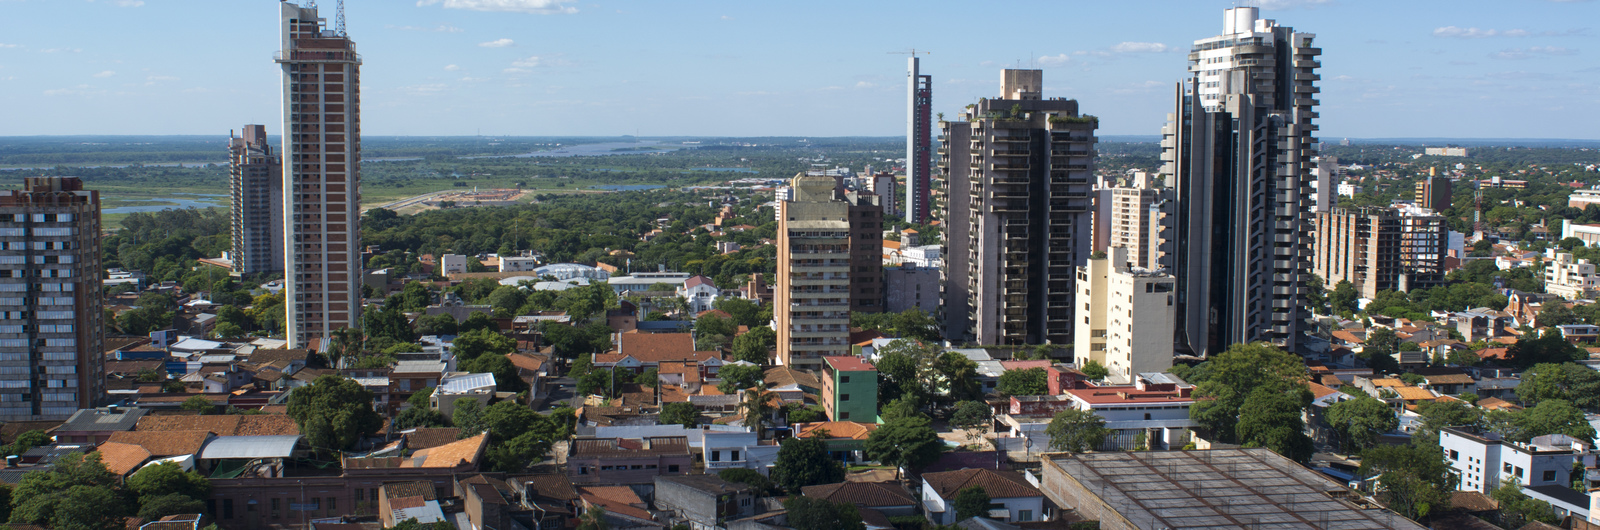 asuncion city header